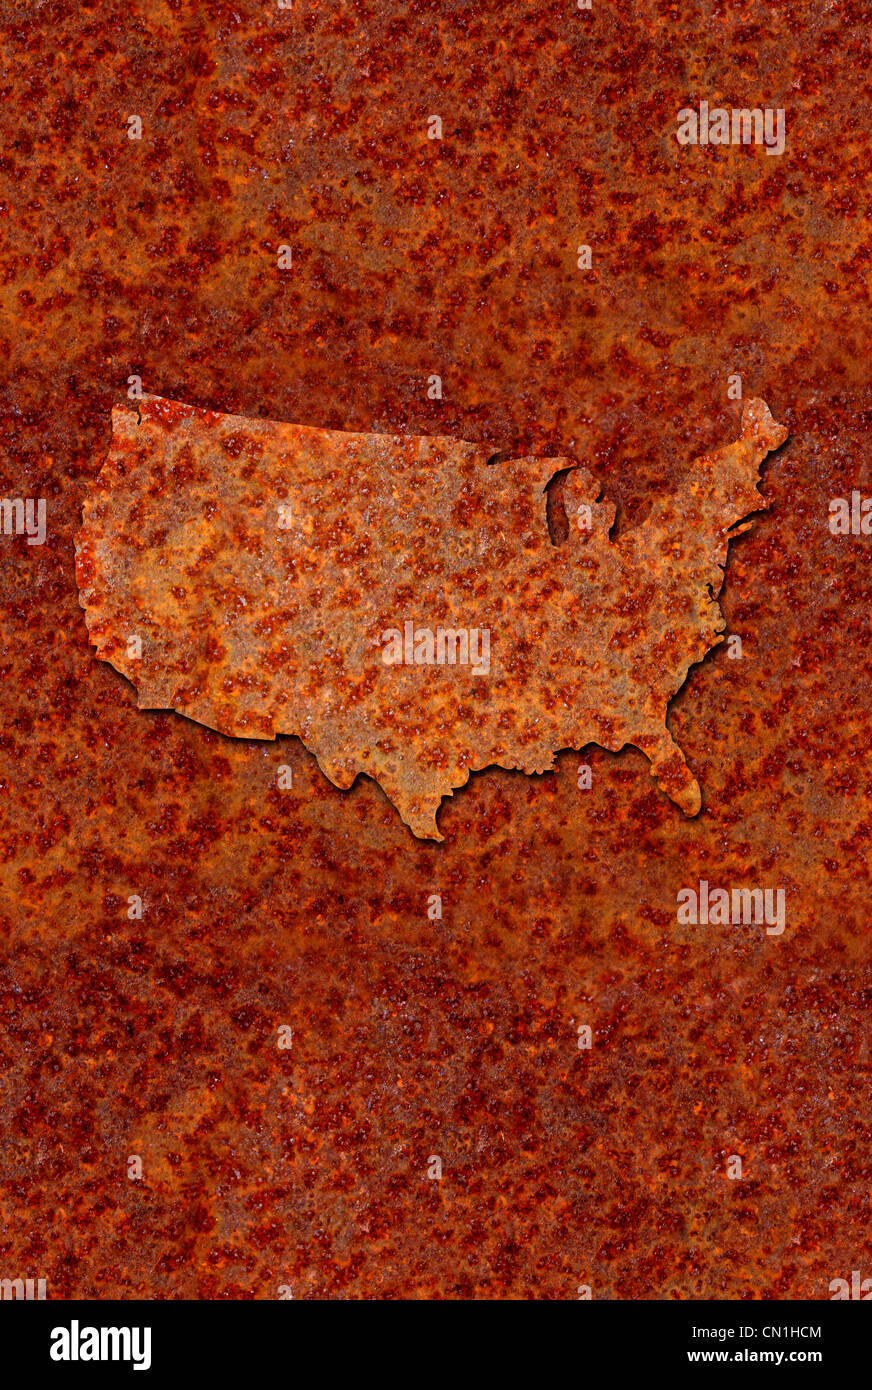 Rusted corroded metal map of the United States, reddish orange in color. - Stock Image